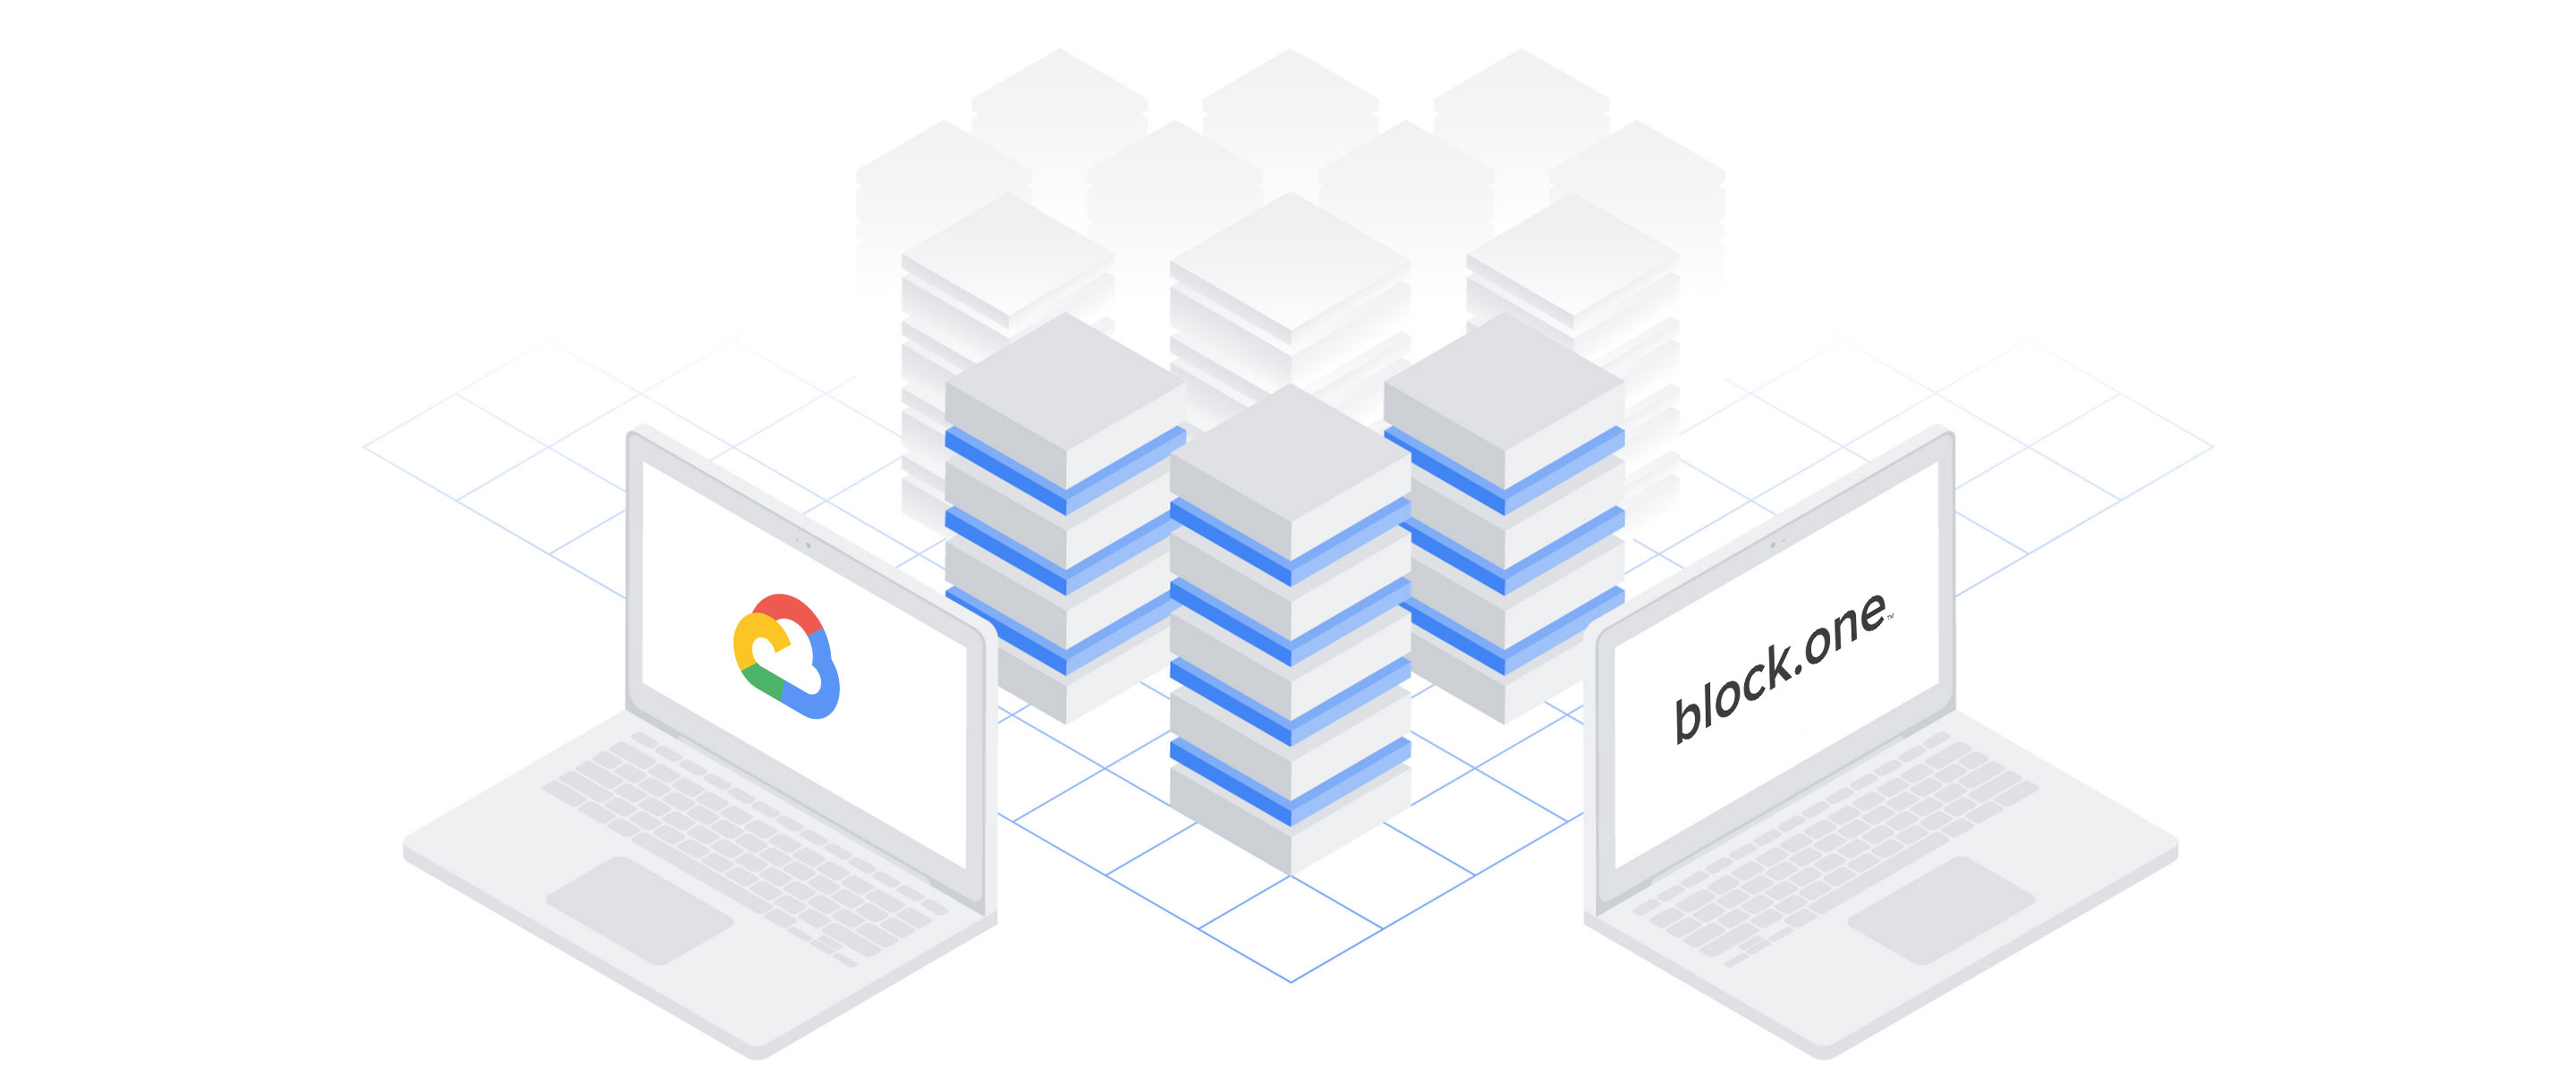 Why Google Cloud is the ideal platform for Block.one and other DLT companies